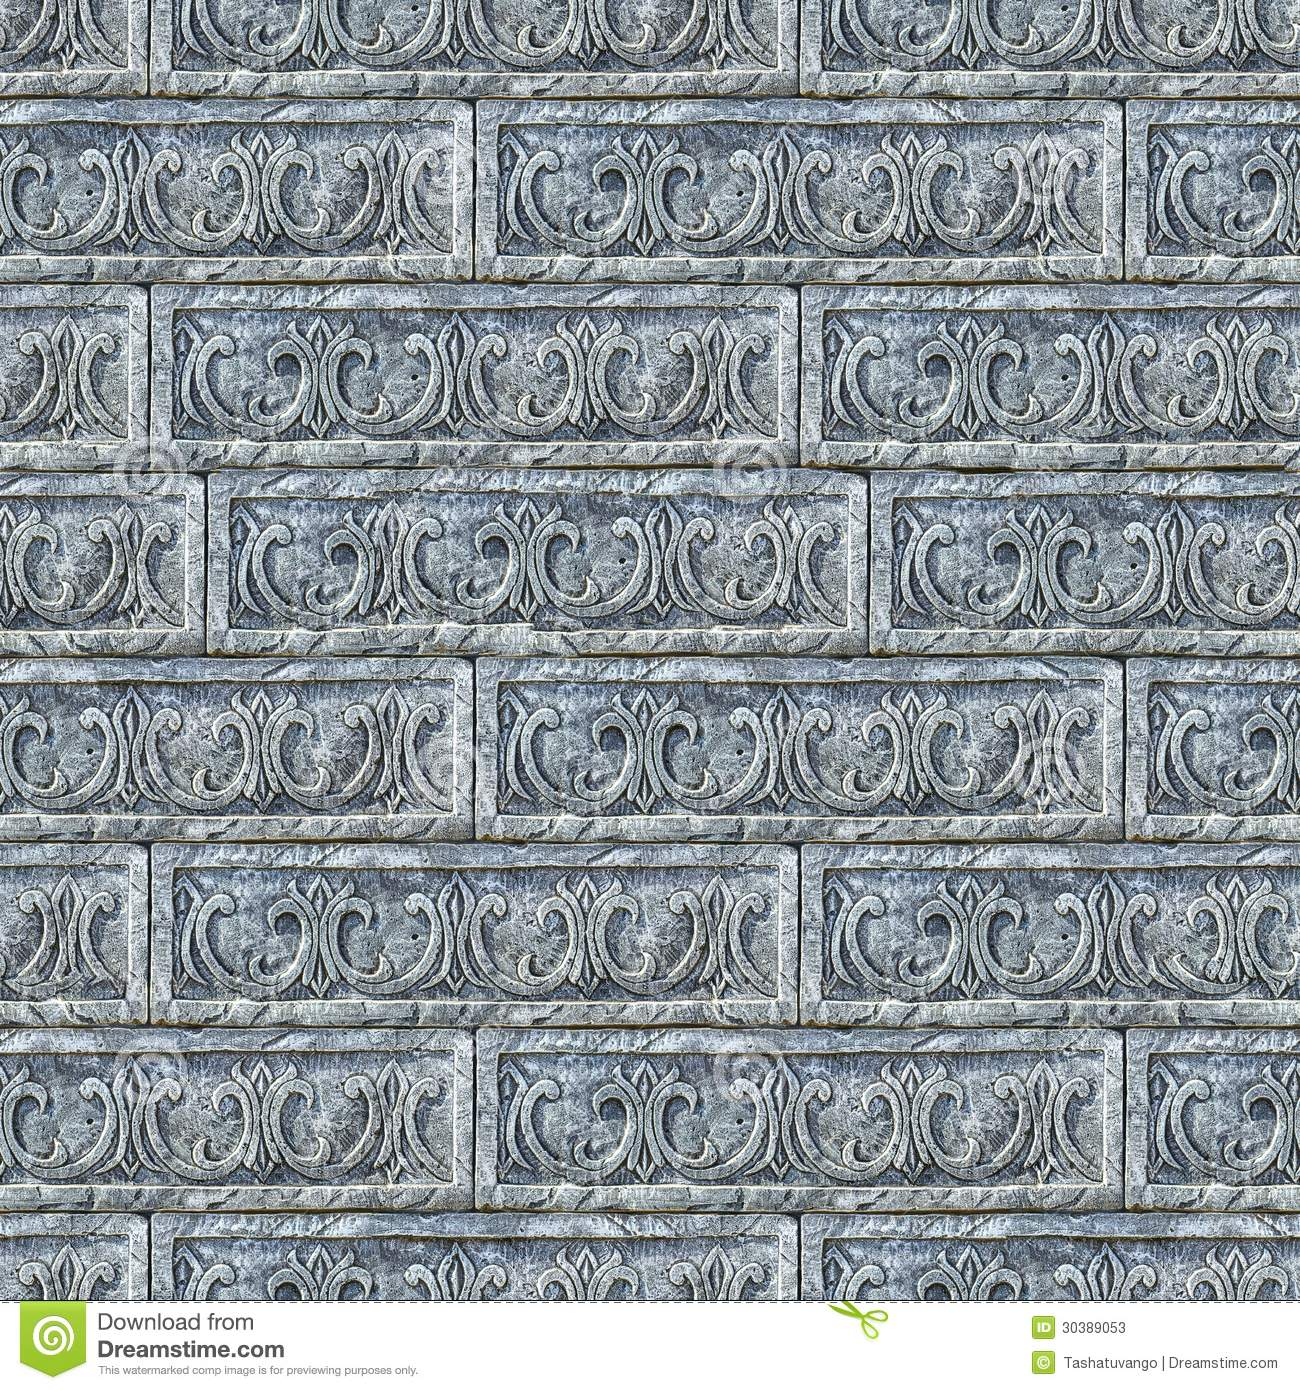 Enjoyable Seamless Texture Of Gray Decorative Bricks Wall Stock Photos Inspirational Interior Design Netriciaus